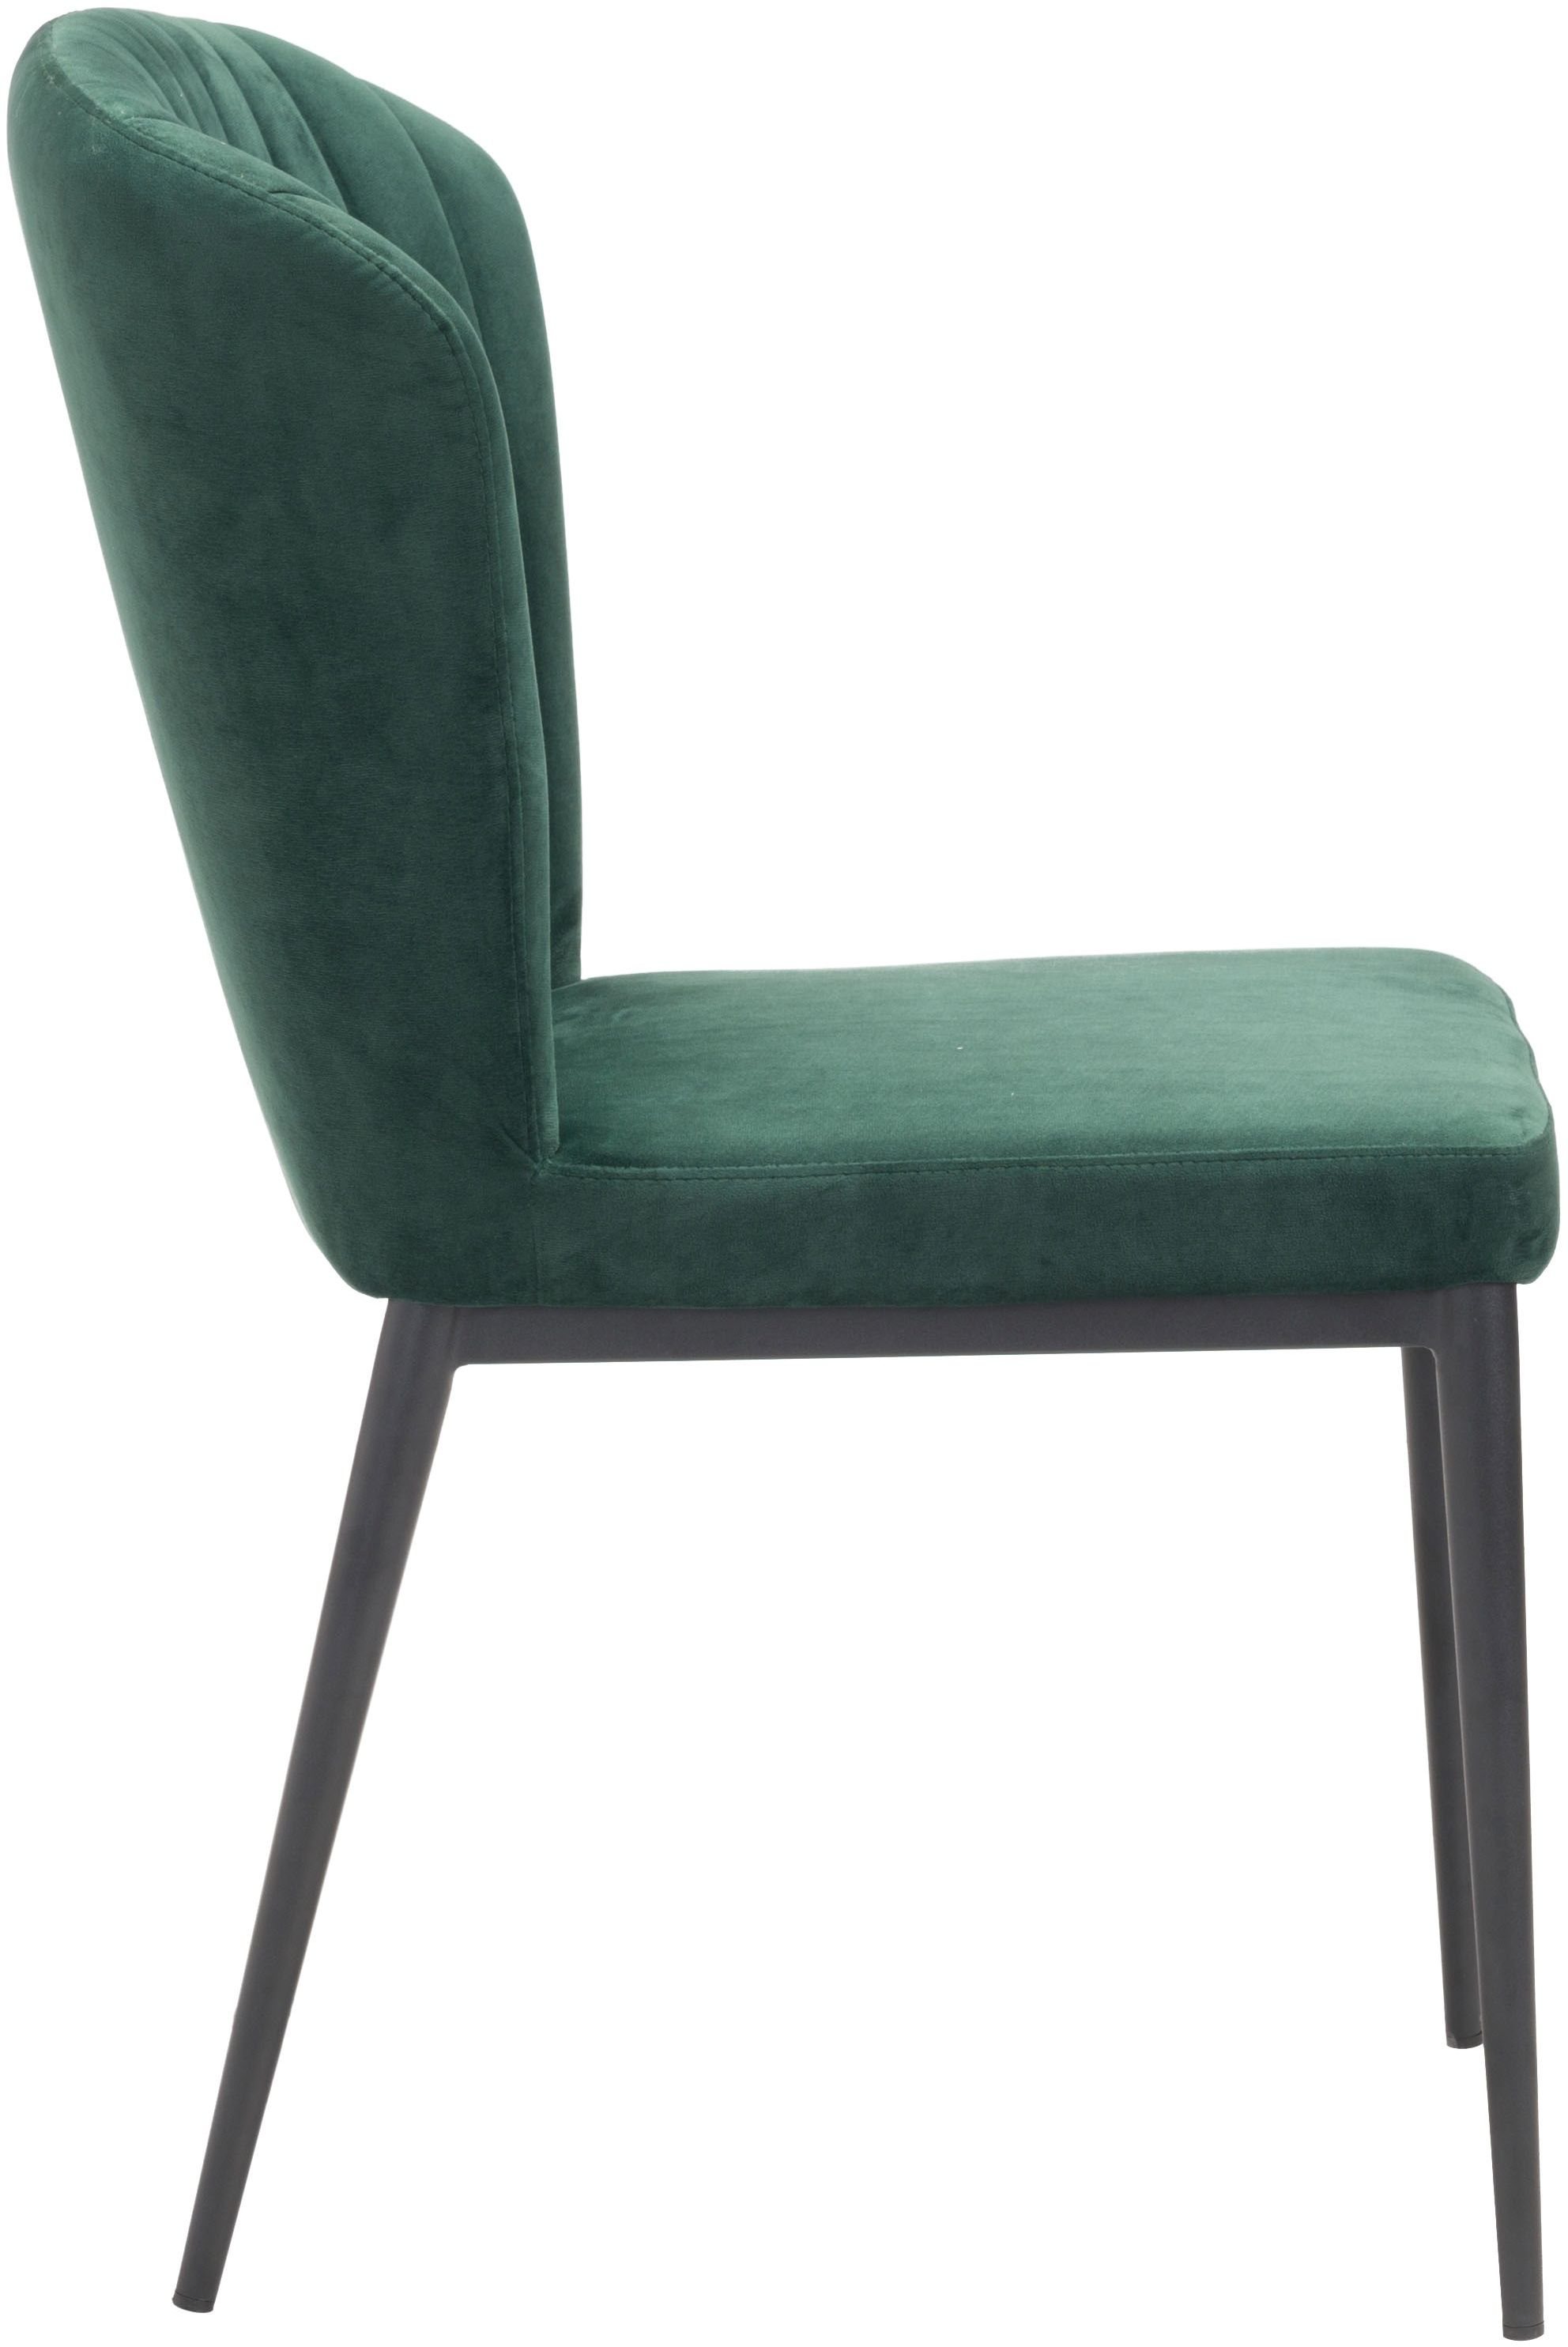 Dining Chair Set Of 2 Tolivere Dining Chair Set Of 2 Green Velvet